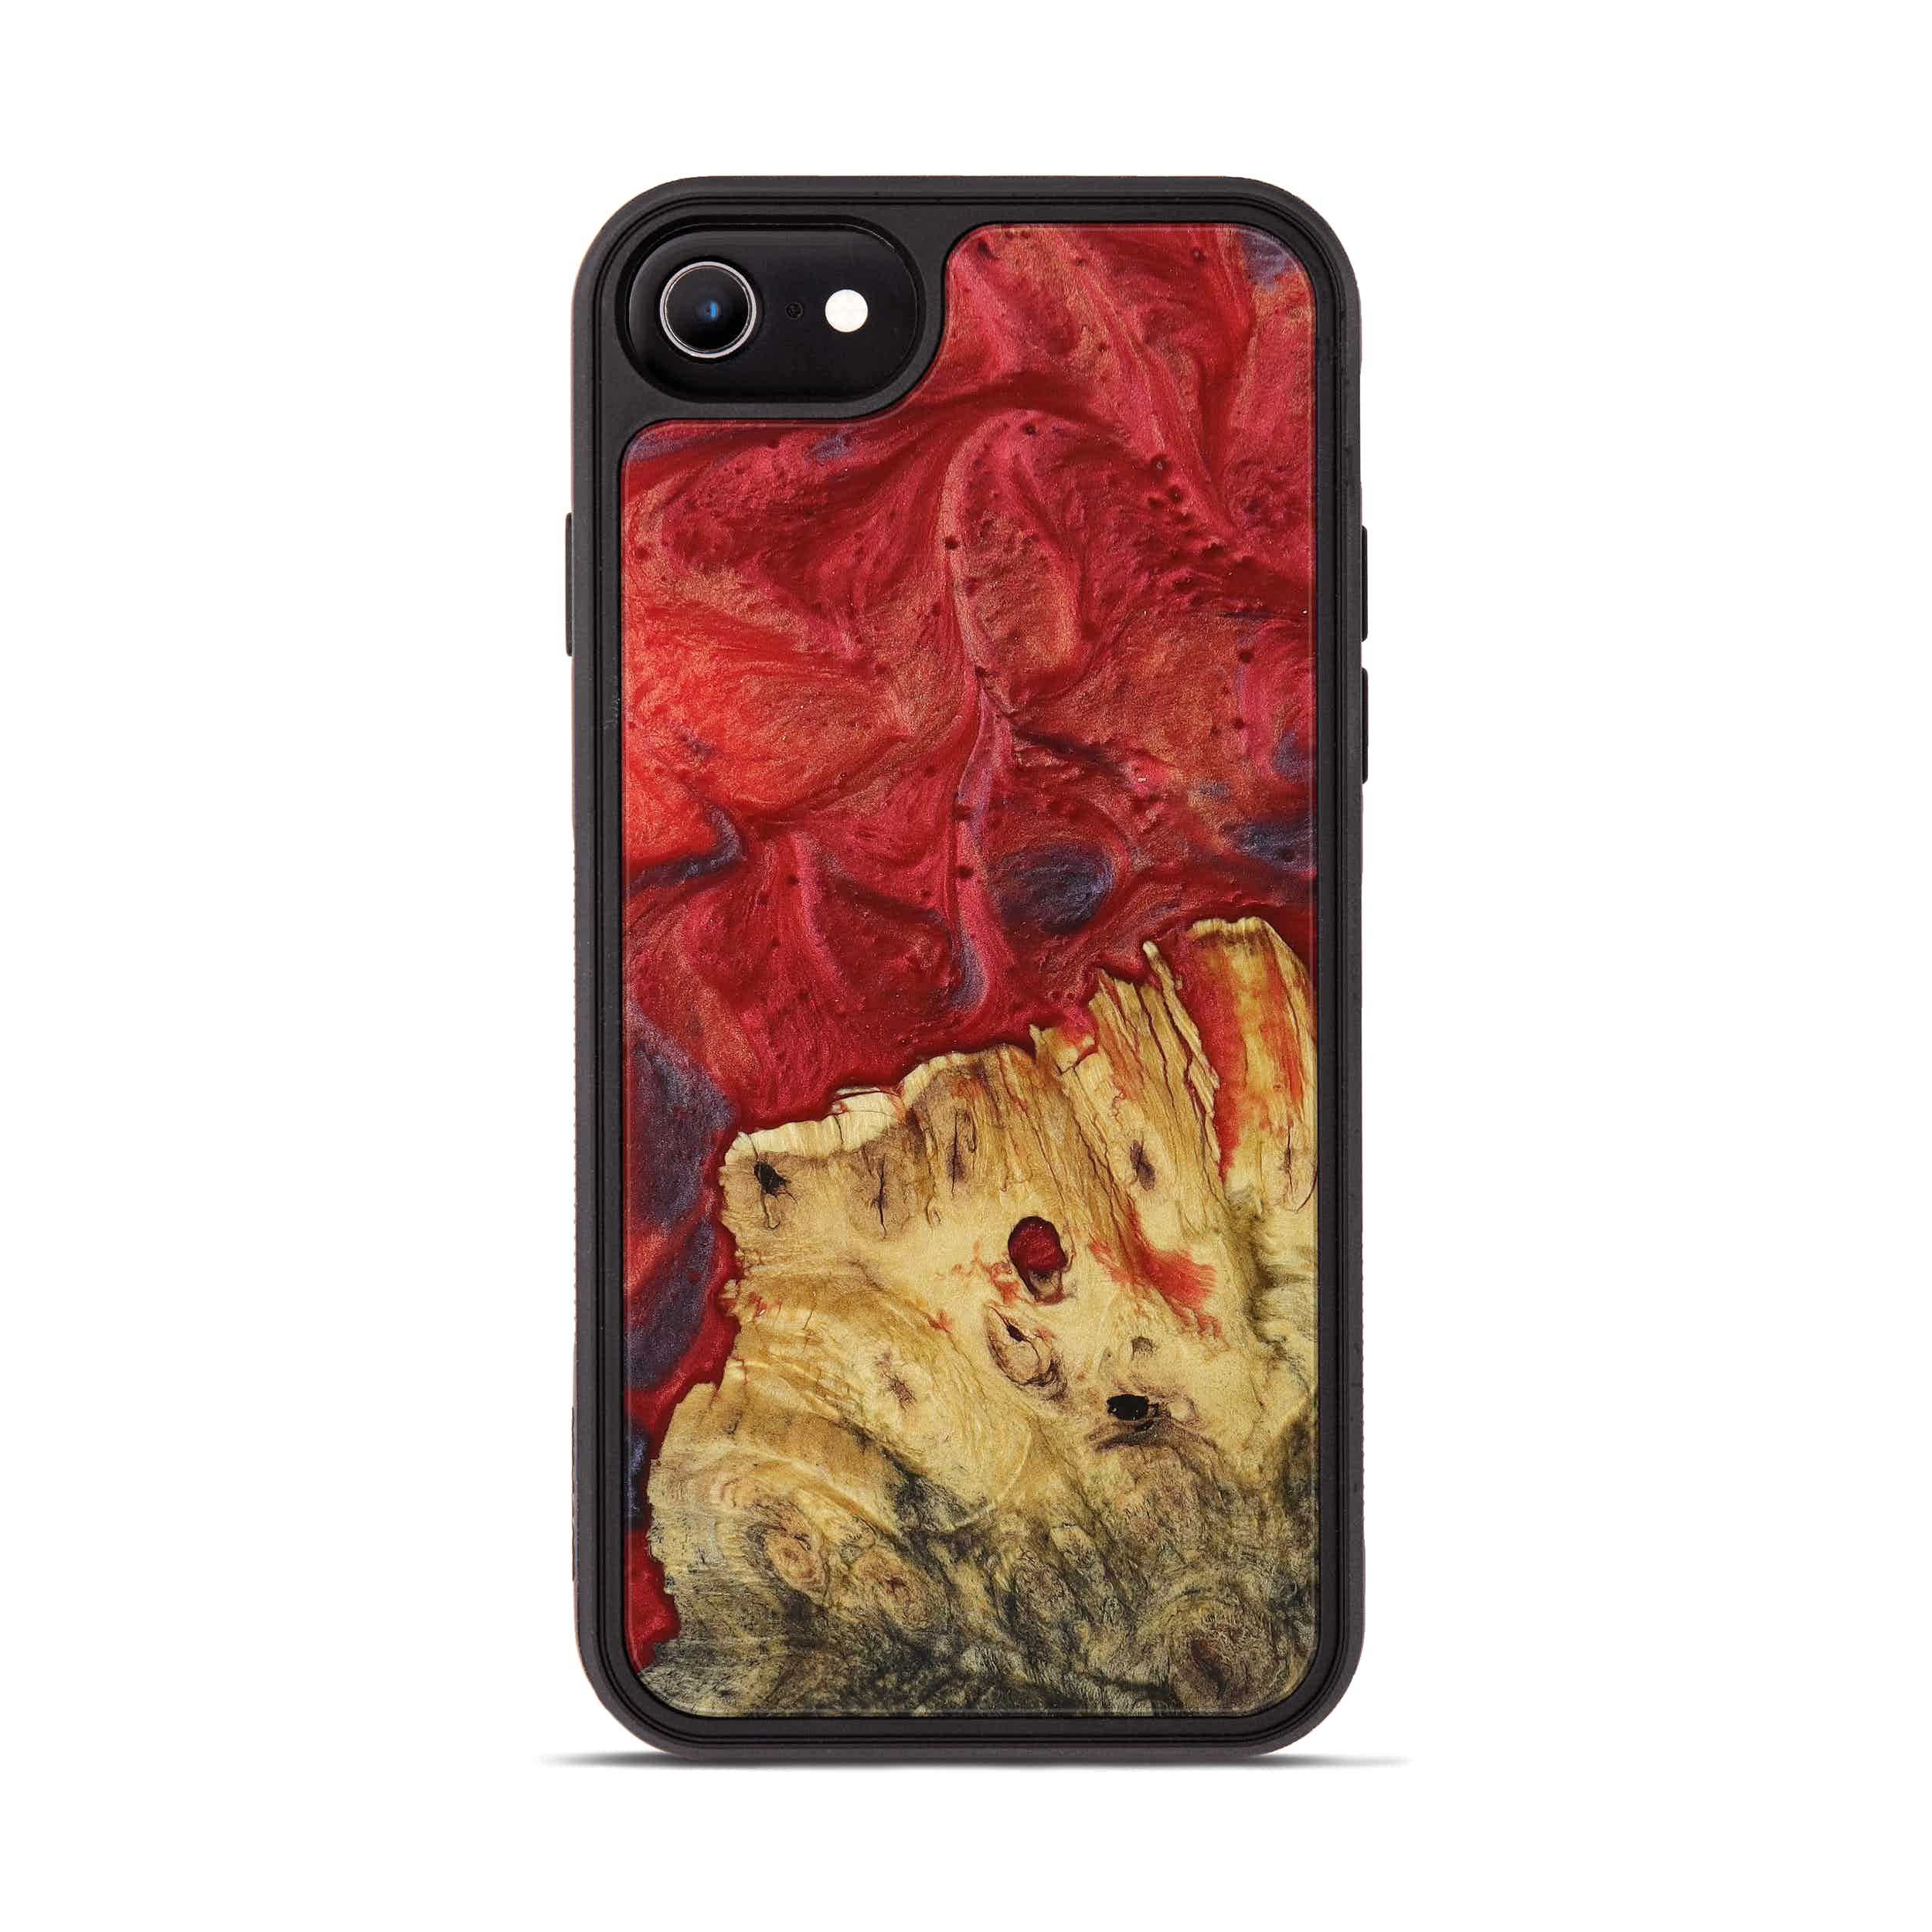 iPhone 6s Wood+Resin Phone Case - Cleve (Dark Red, 395199)